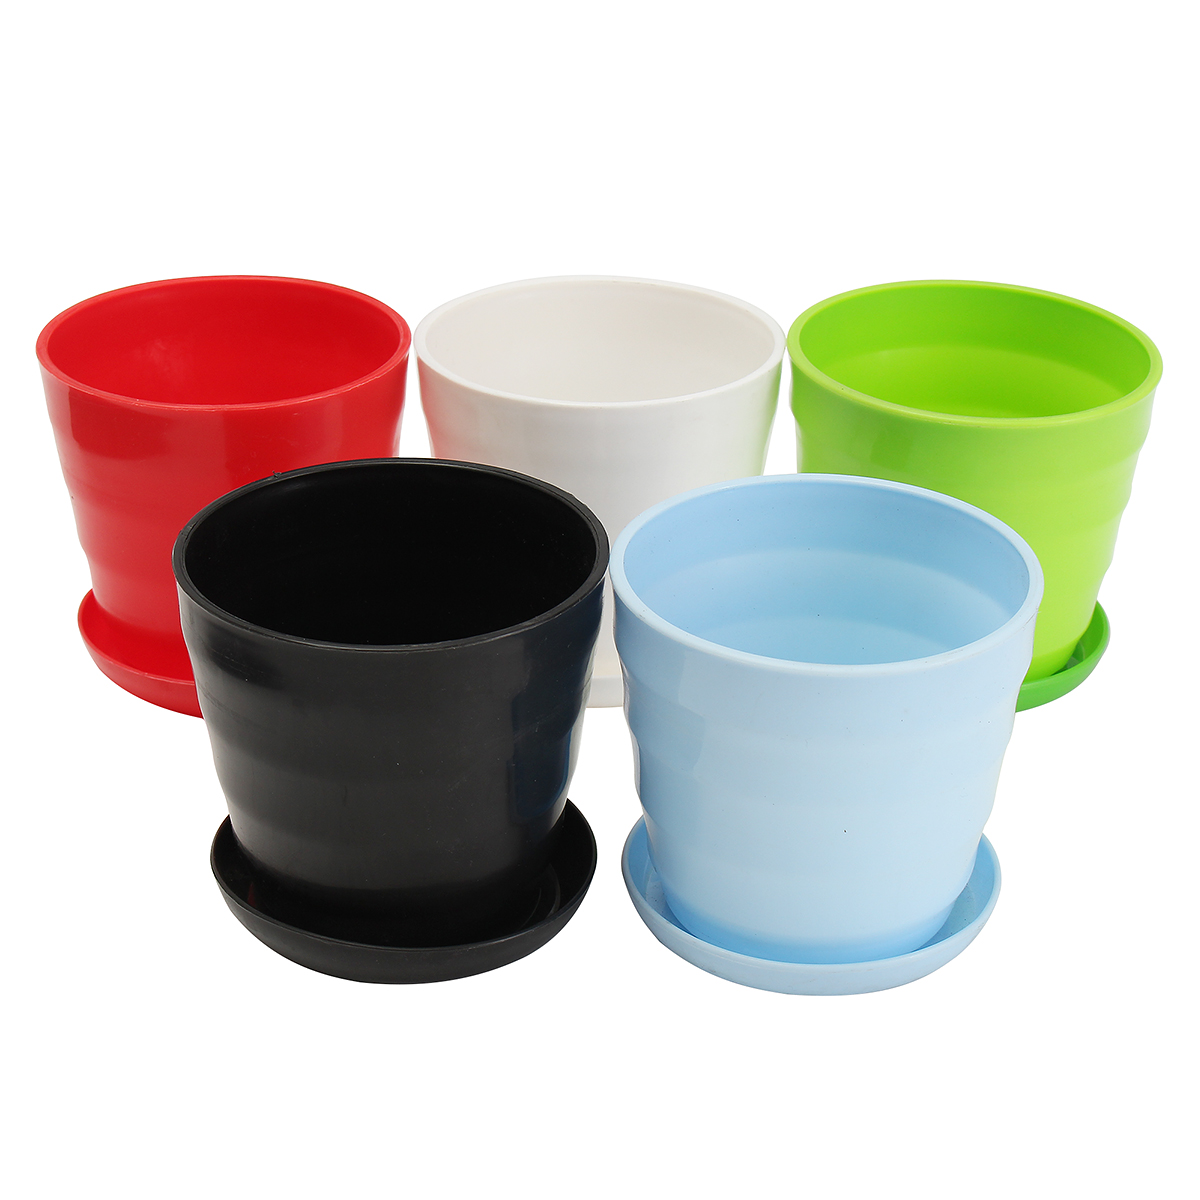 small plastic plant pot colorful flower pot durable decoration container diy home garden alex nld. Black Bedroom Furniture Sets. Home Design Ideas